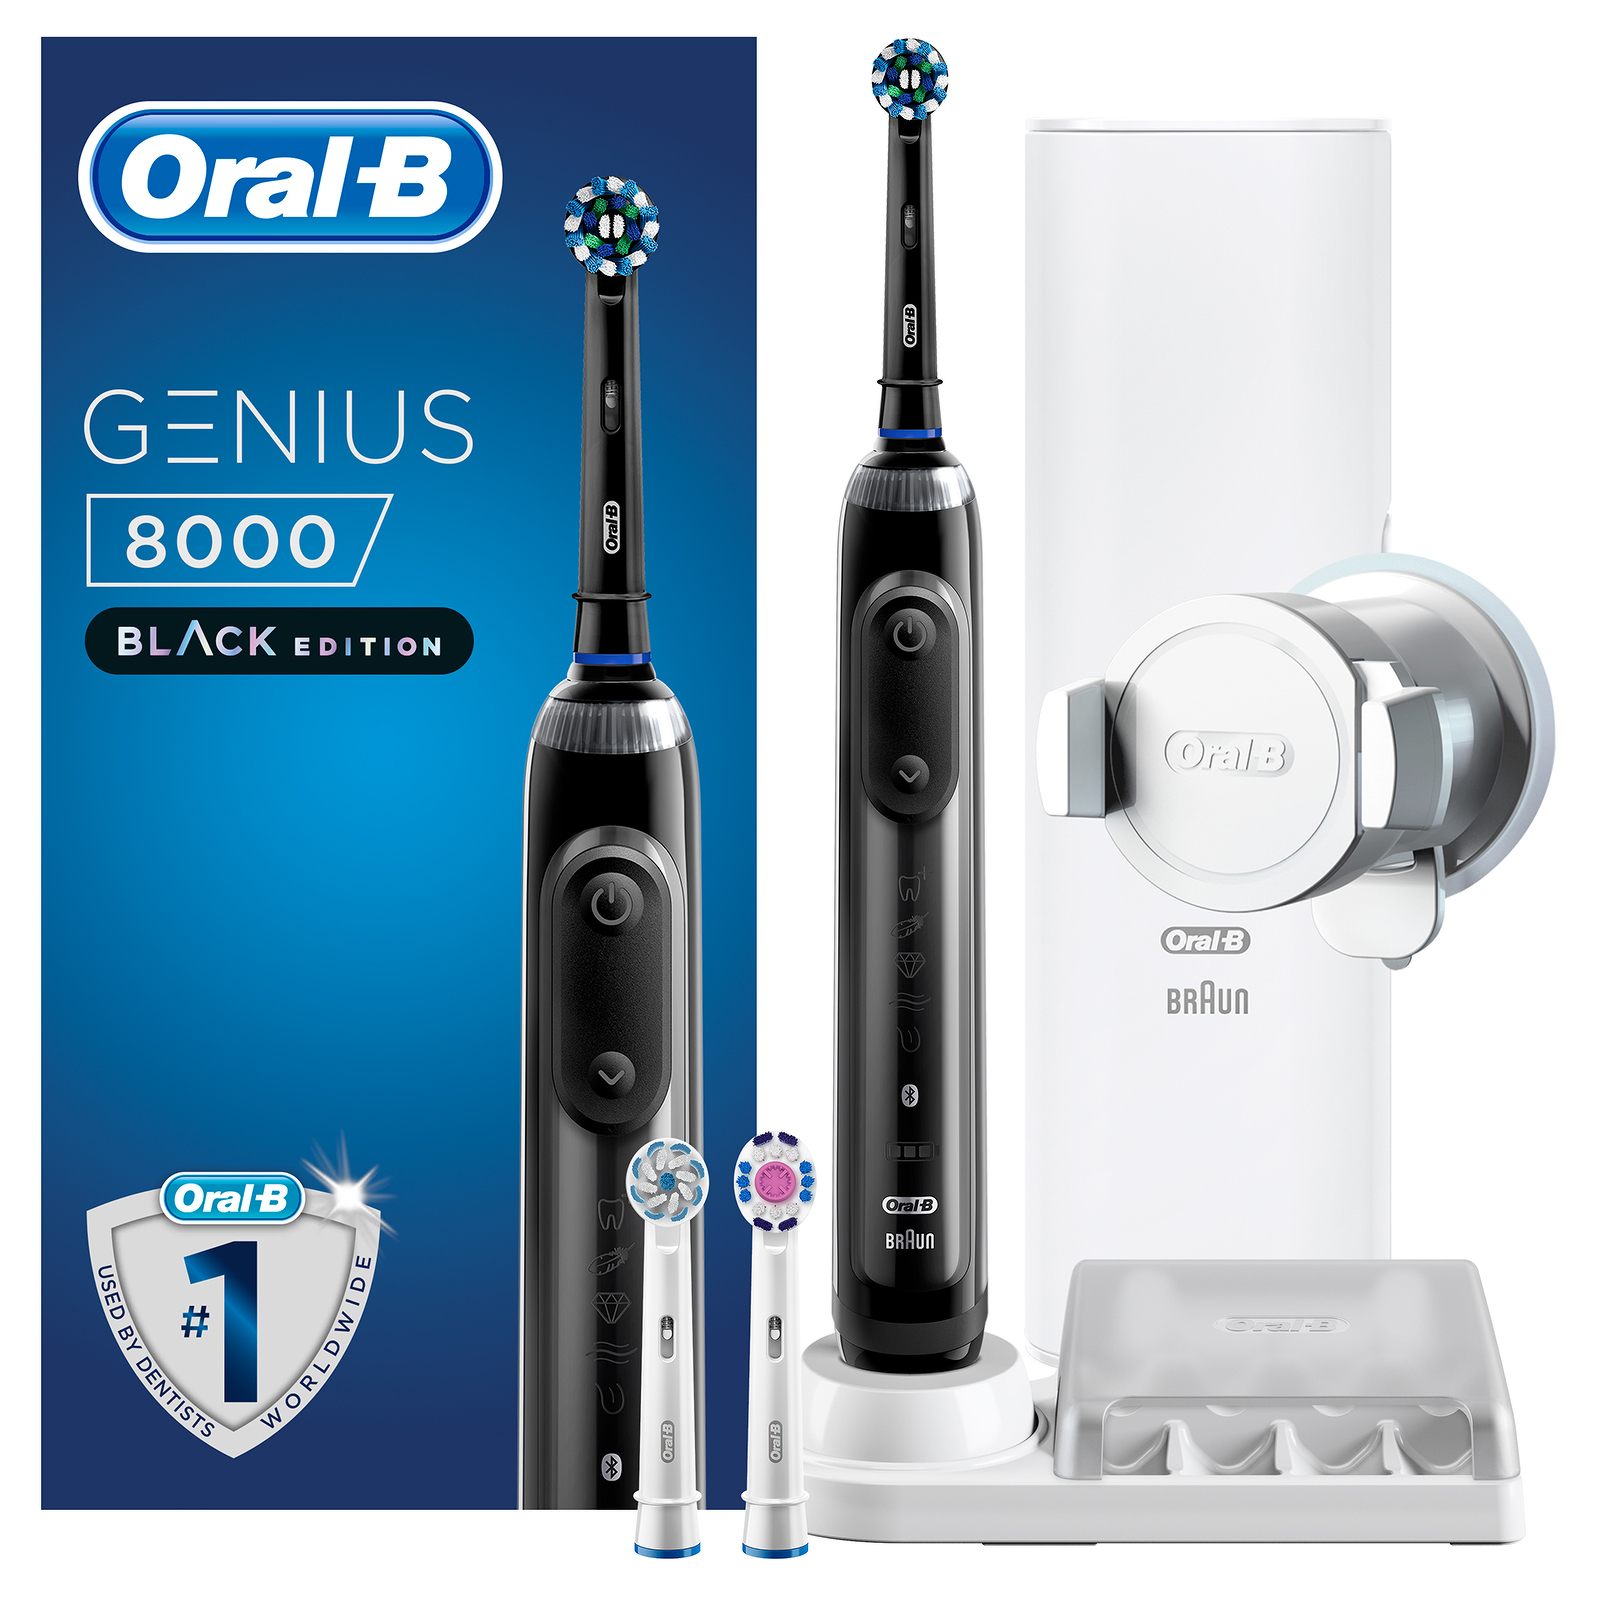 Oral-B Genius 8000 CrossAction Electric Toothbrush Black Edition